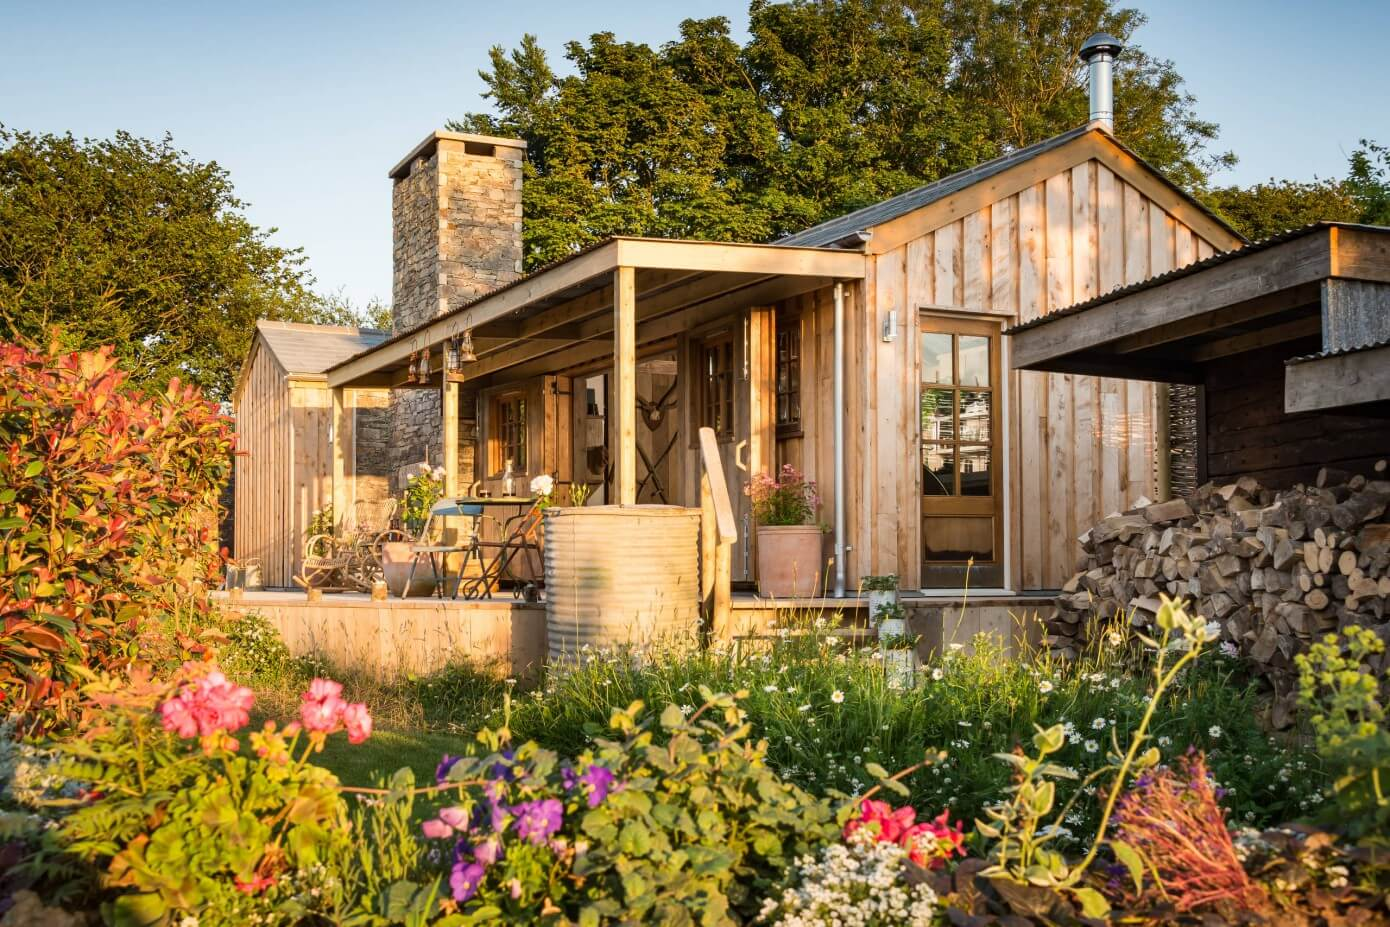 A beautiful wooden cottage in North Cornwall. exterior